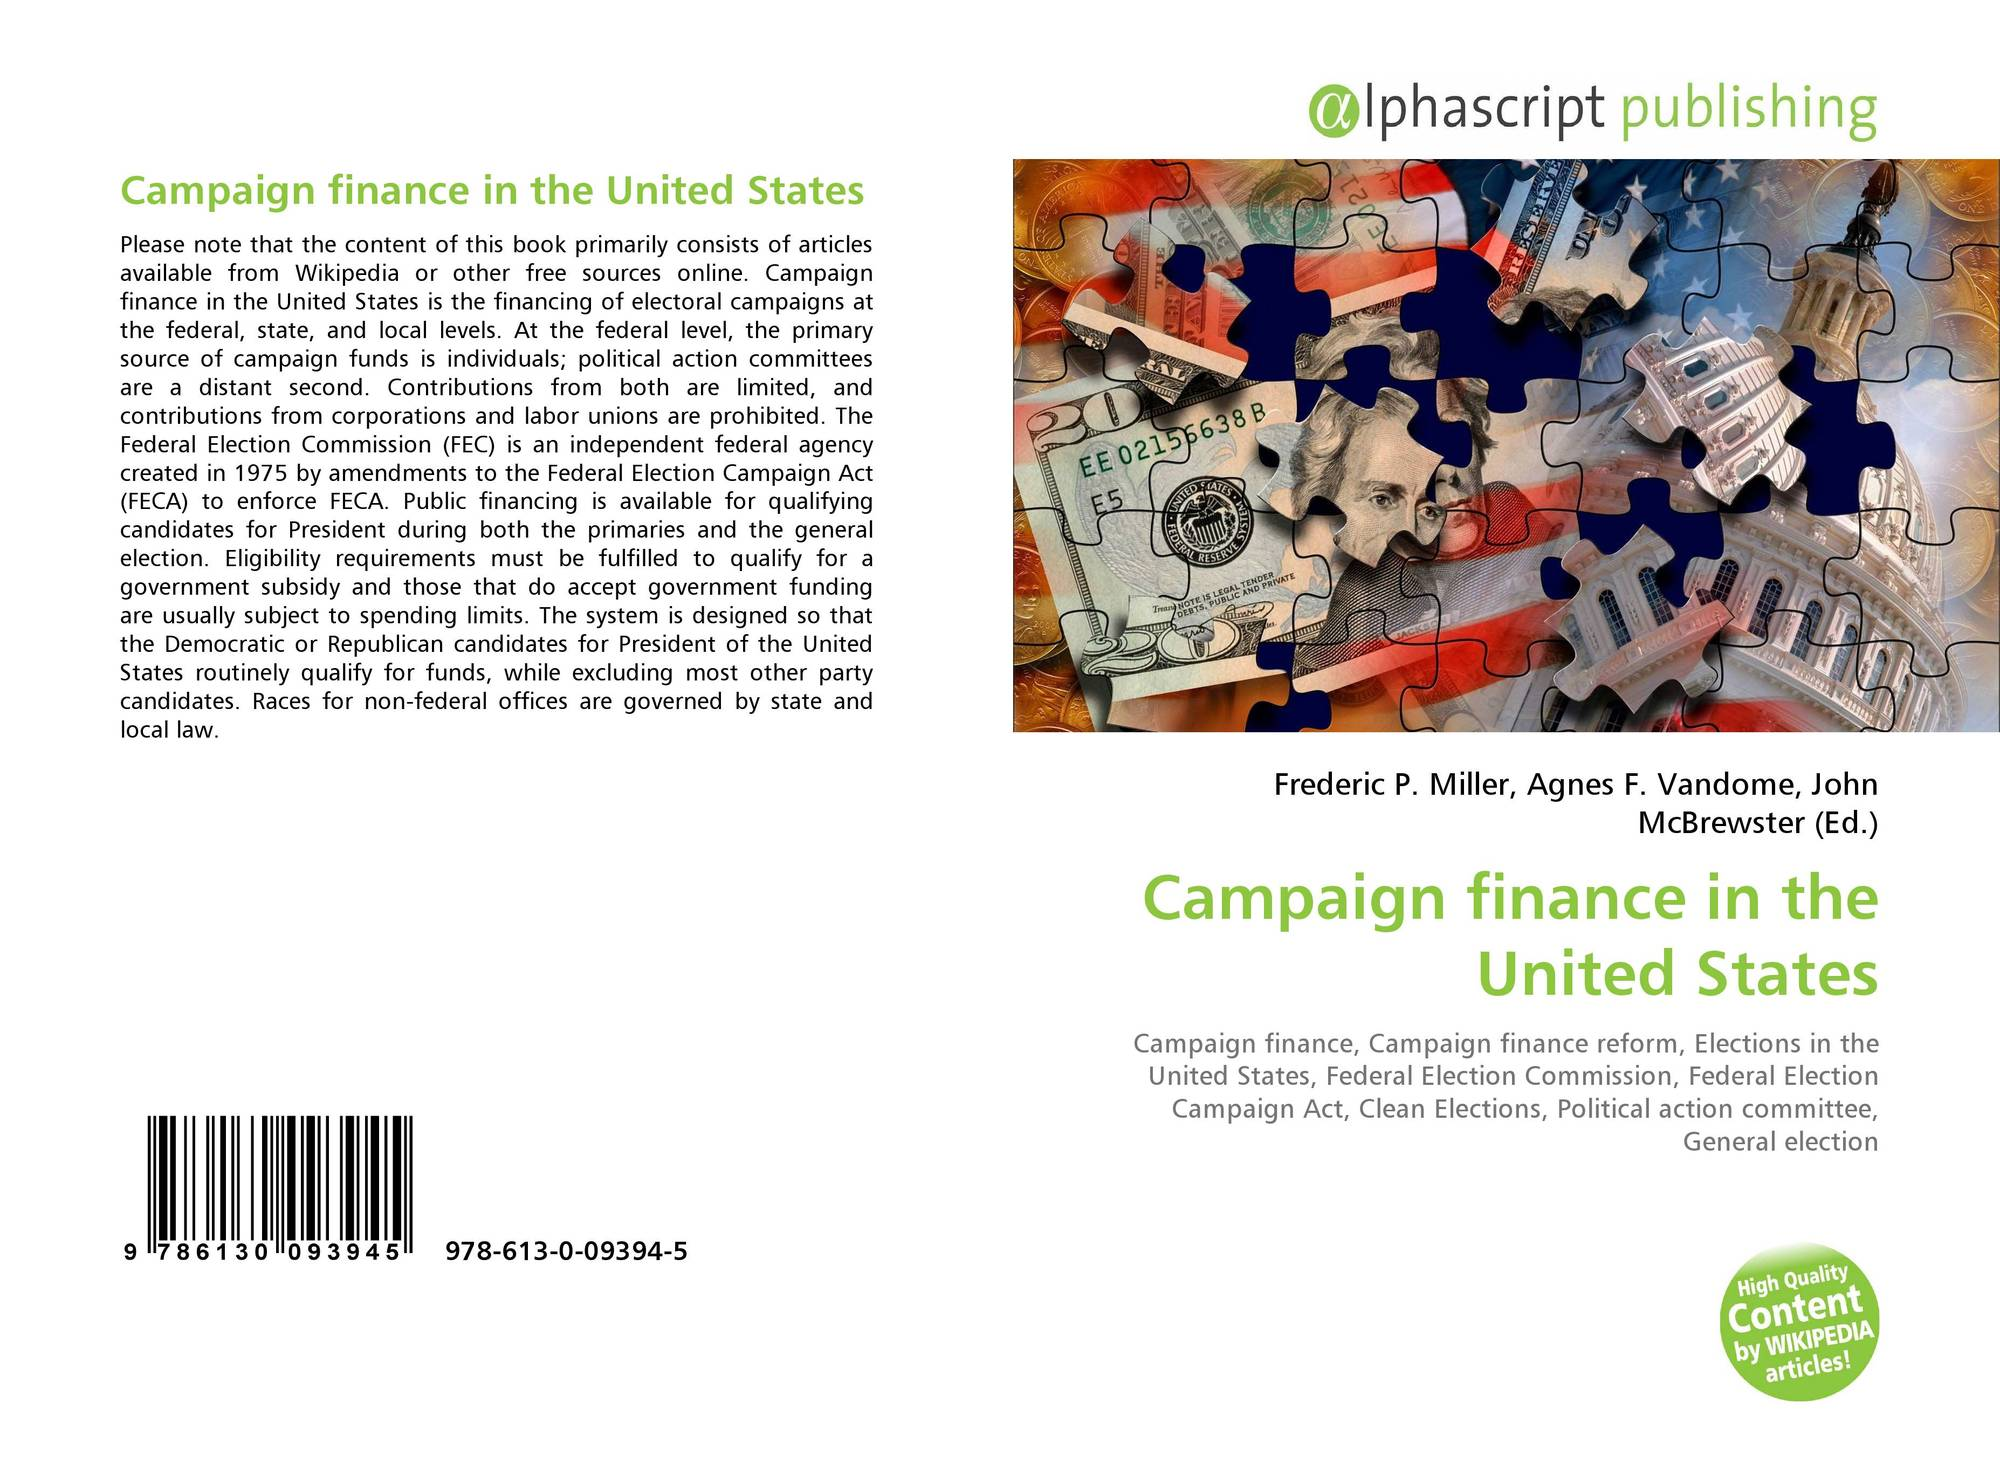 a discussion on the issue of campaign finances in the united states The issue gained traction during the occupy wall street protest movement in 2011 and during the successful us senate campaign of former harvard law school professor elizabeth warren in 2012 read.